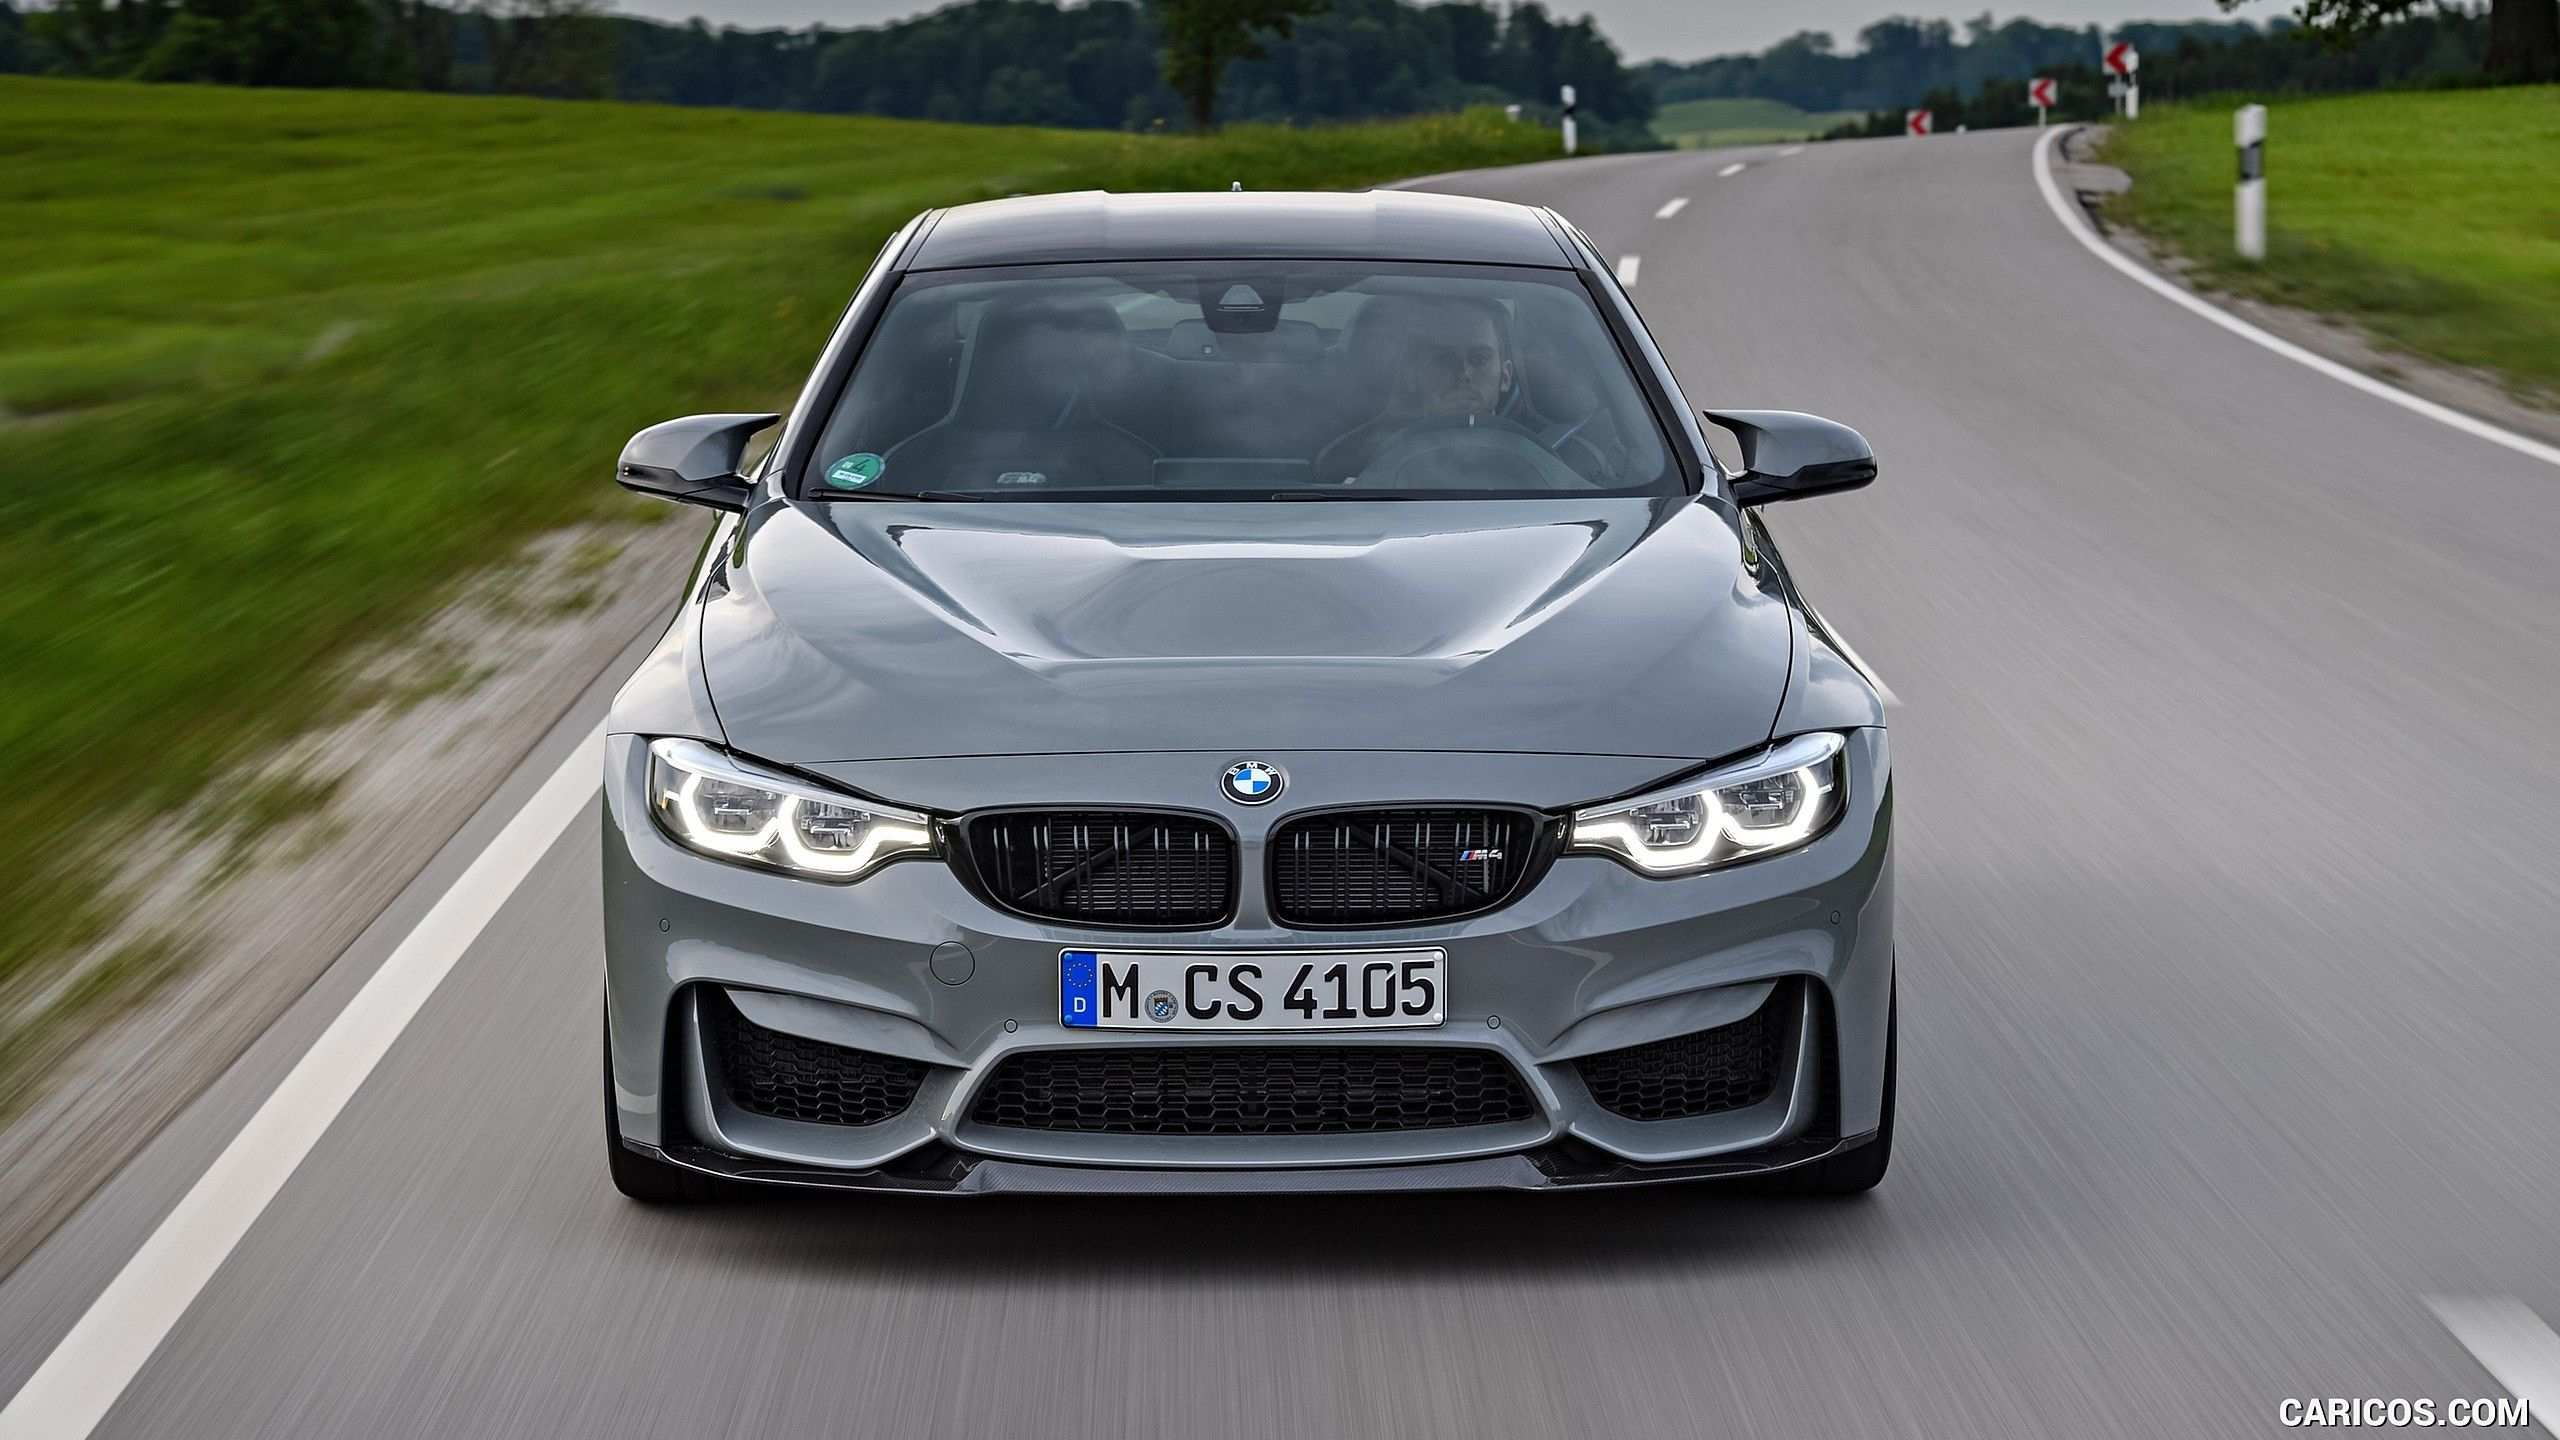 86 Gallery of 2020 BMW M4 Colors Wallpaper with 2020 BMW M4 Colors